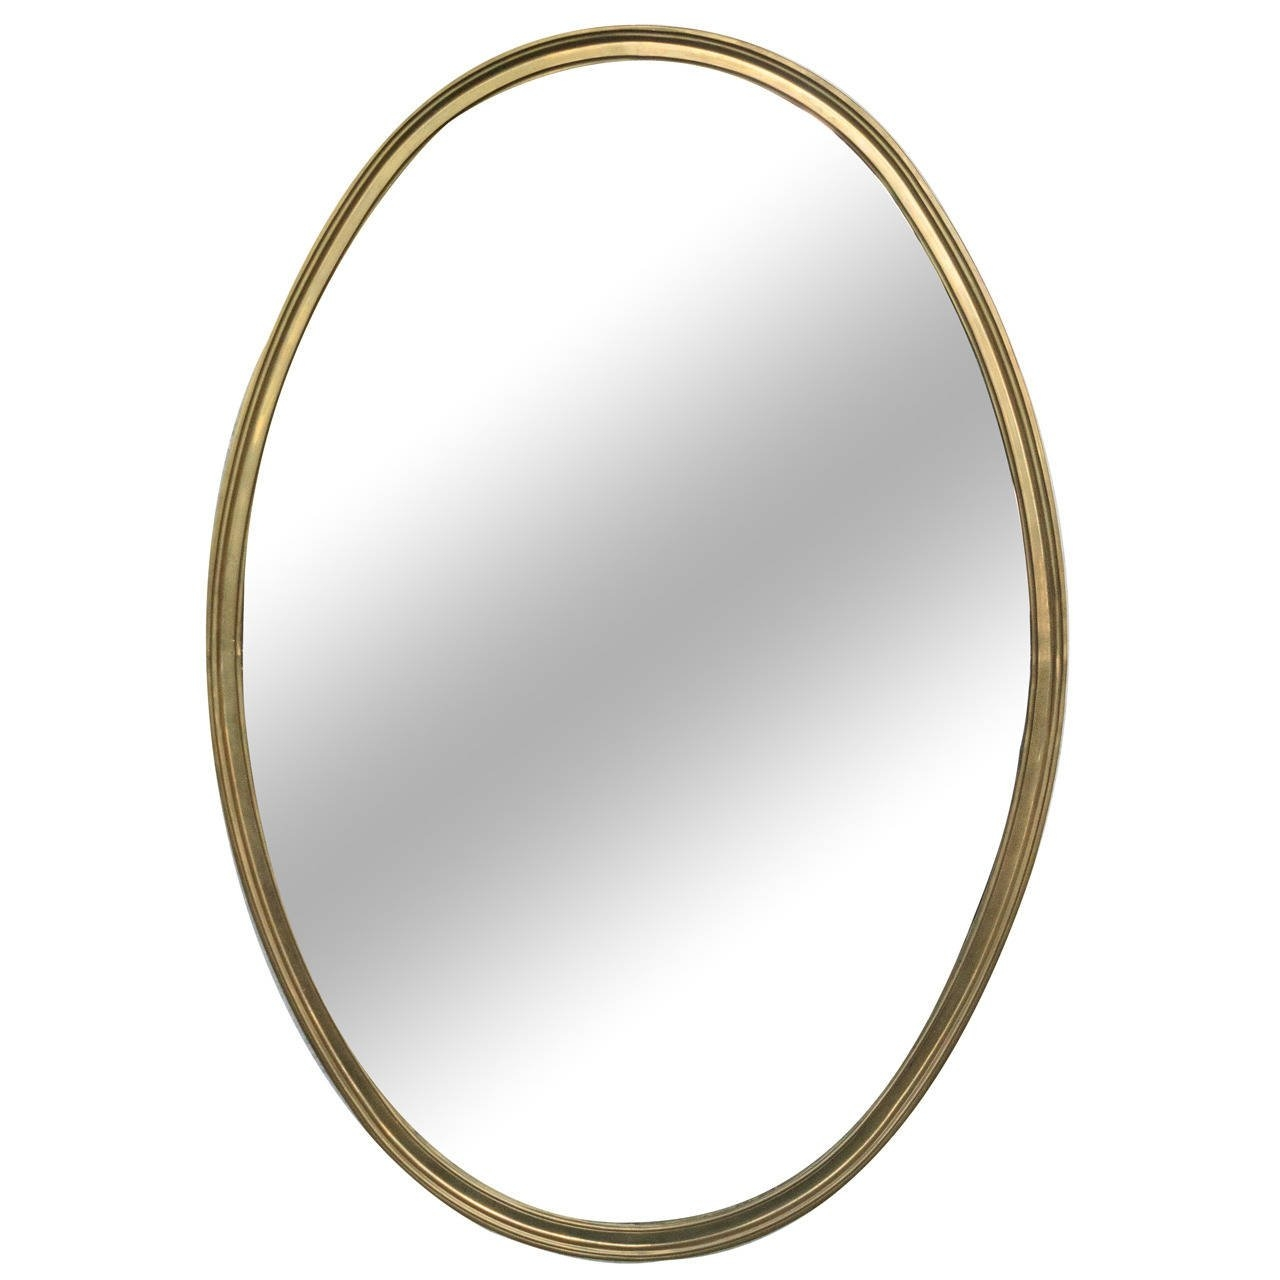 1950s French Brass Oval Shaped Mirror At 1stdibs Inside French Oval Mirror (Image 2 of 15)